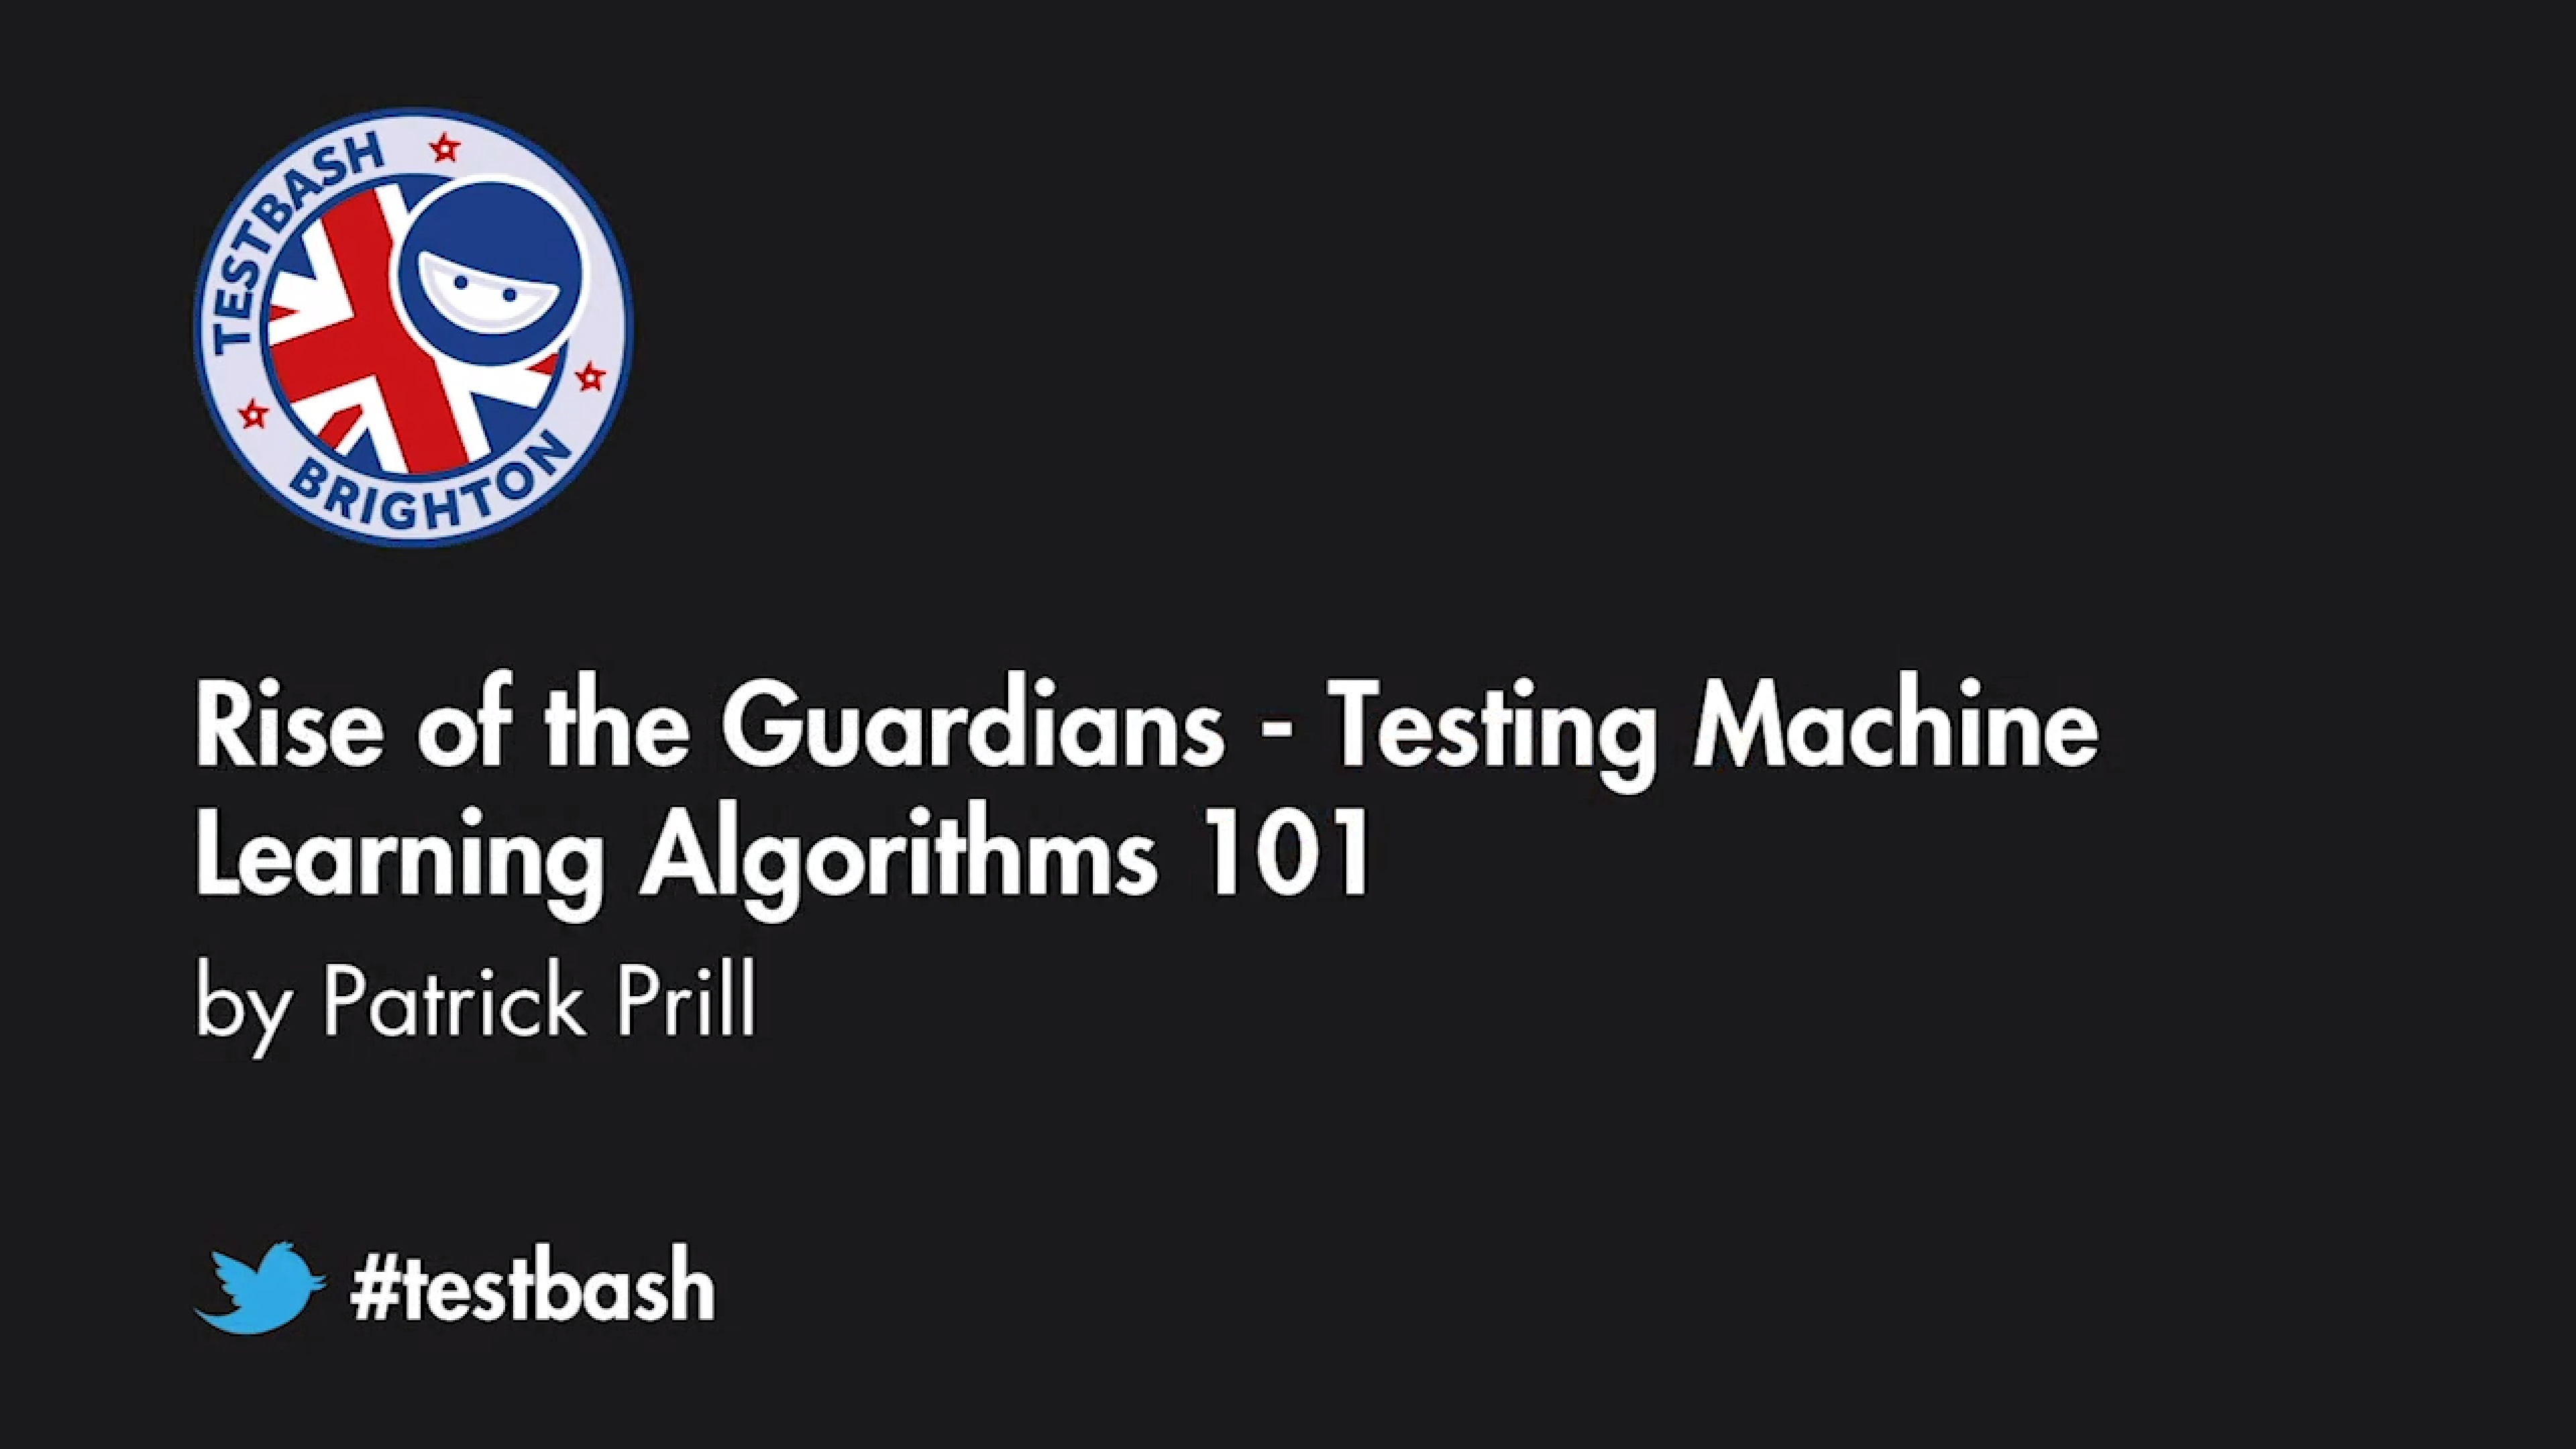 Rise of the Guardians: Testing Machine Learning Algorithms 101 - Patrick Prill